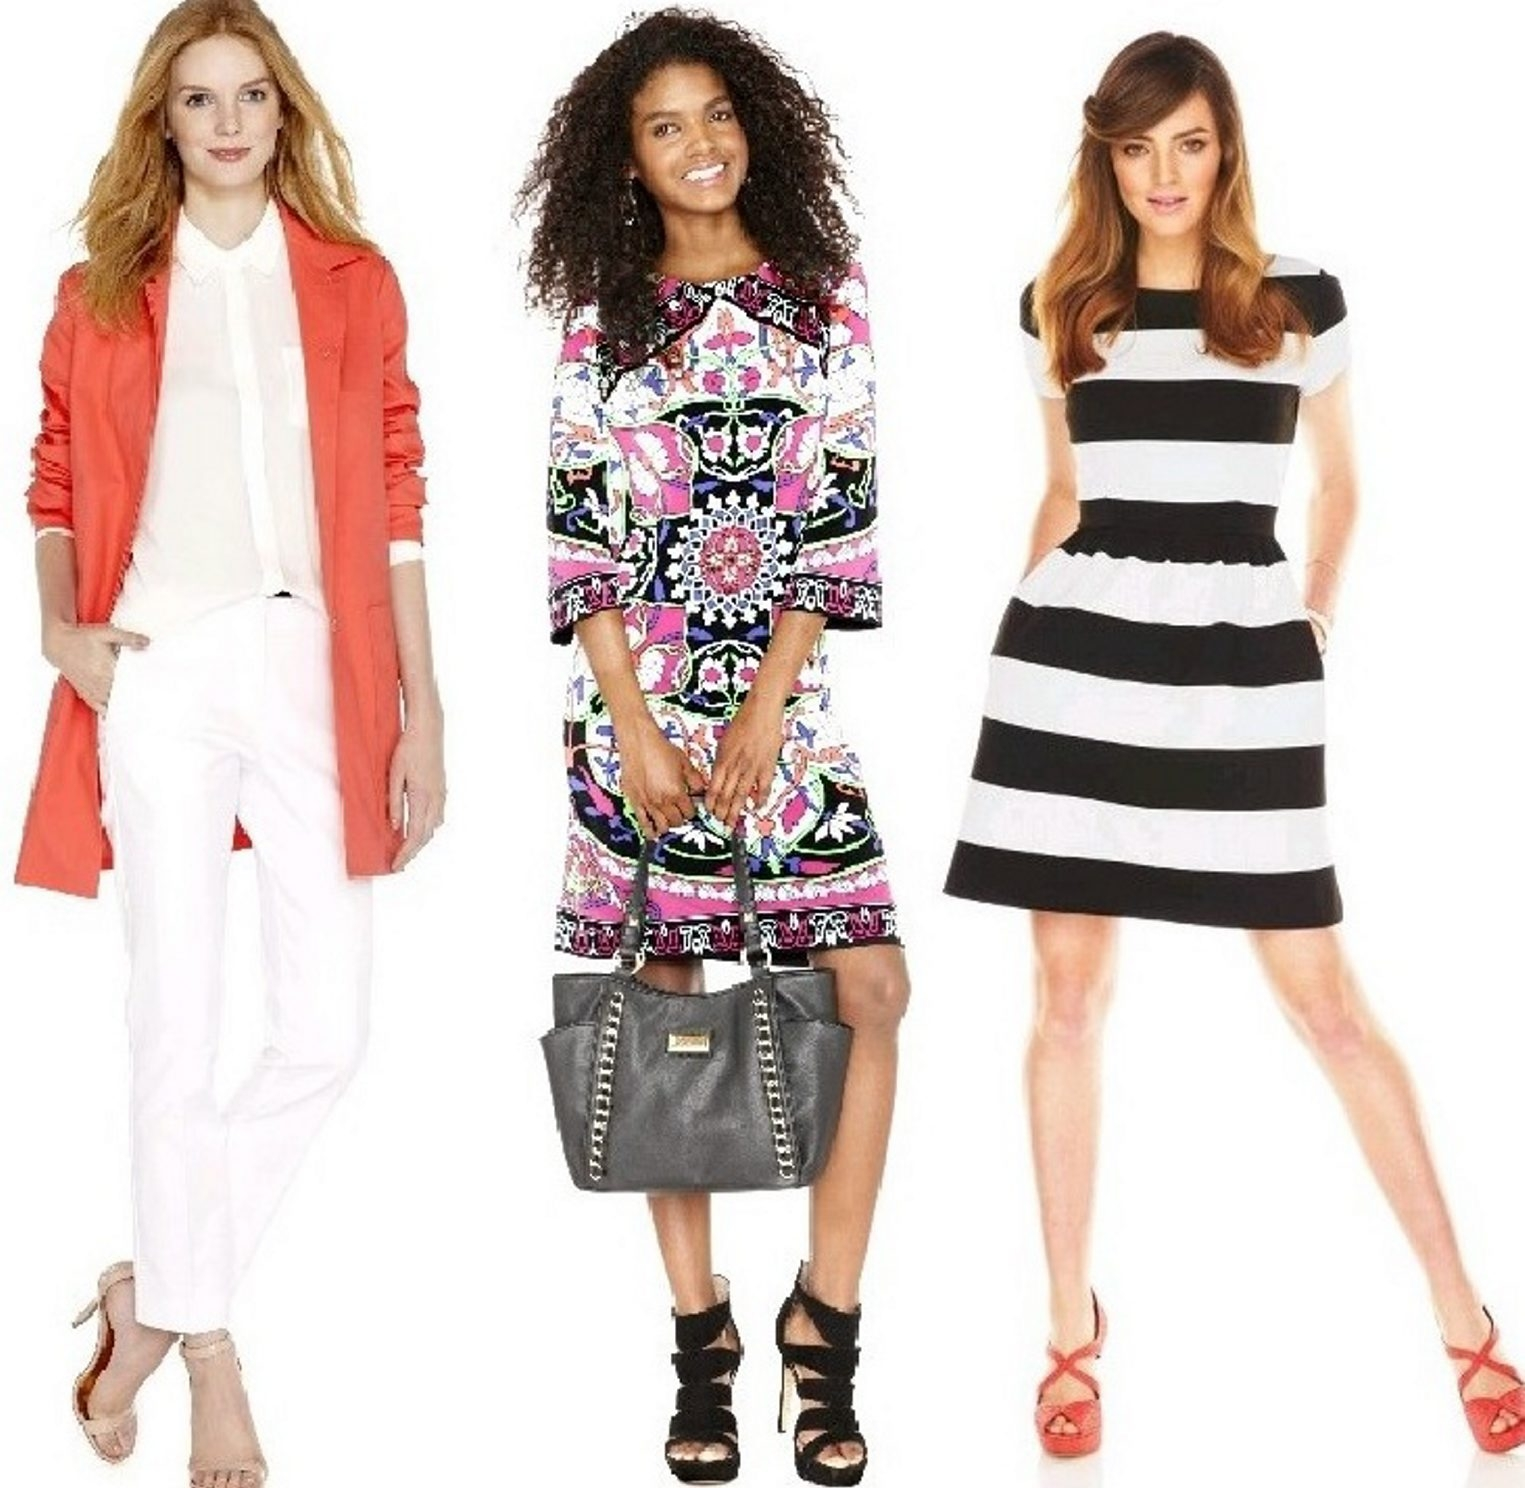 Looks for spring include, from left: Pinks and corals from Joe Fresh collection, J.C. Penney; bold prints in dress by nicole from Nicole Miller at J.C. Penney; and stripes from the Elle collection at Kohl's.